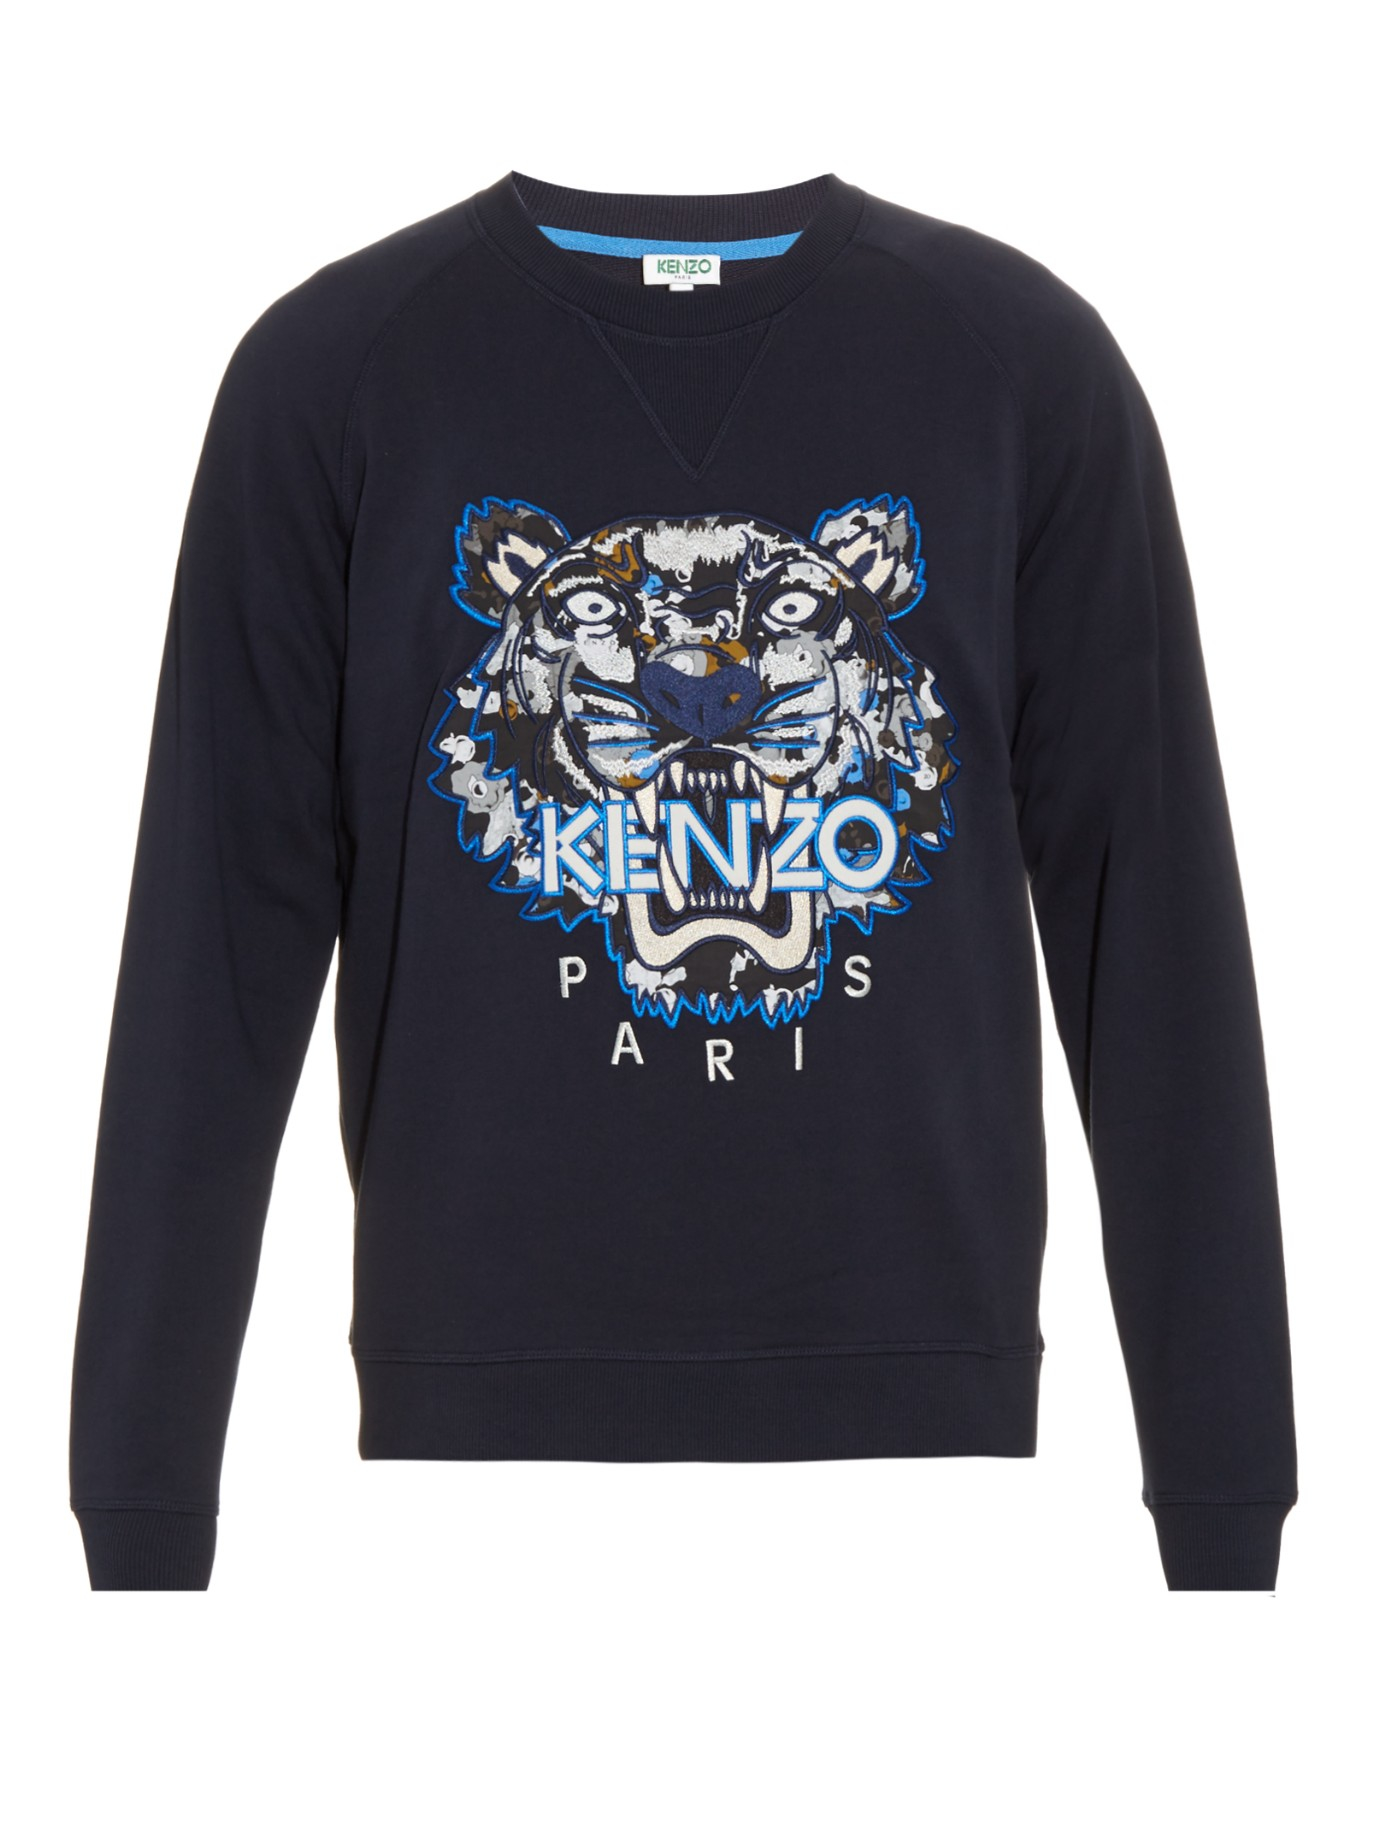 KENZO Tiger-head Embroidered Sweater in Blue for Men - Lyst 3fe740571